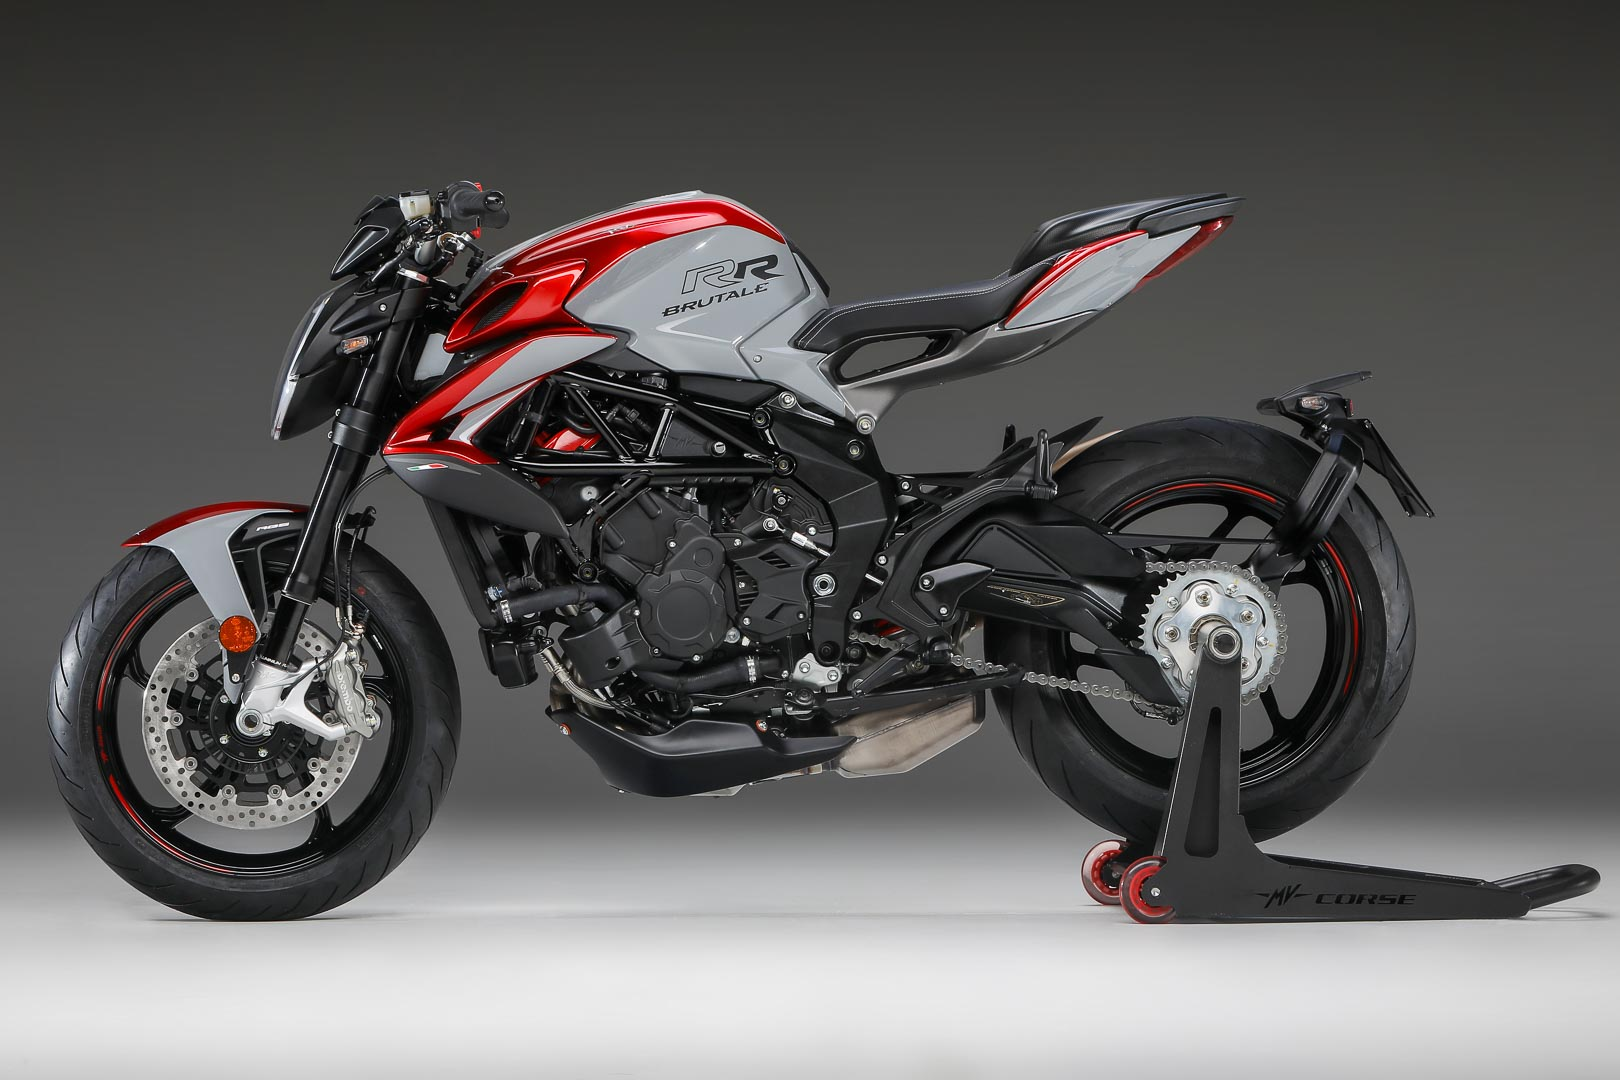 2020 MV Agusta Brutale 800 RR SCS First Look